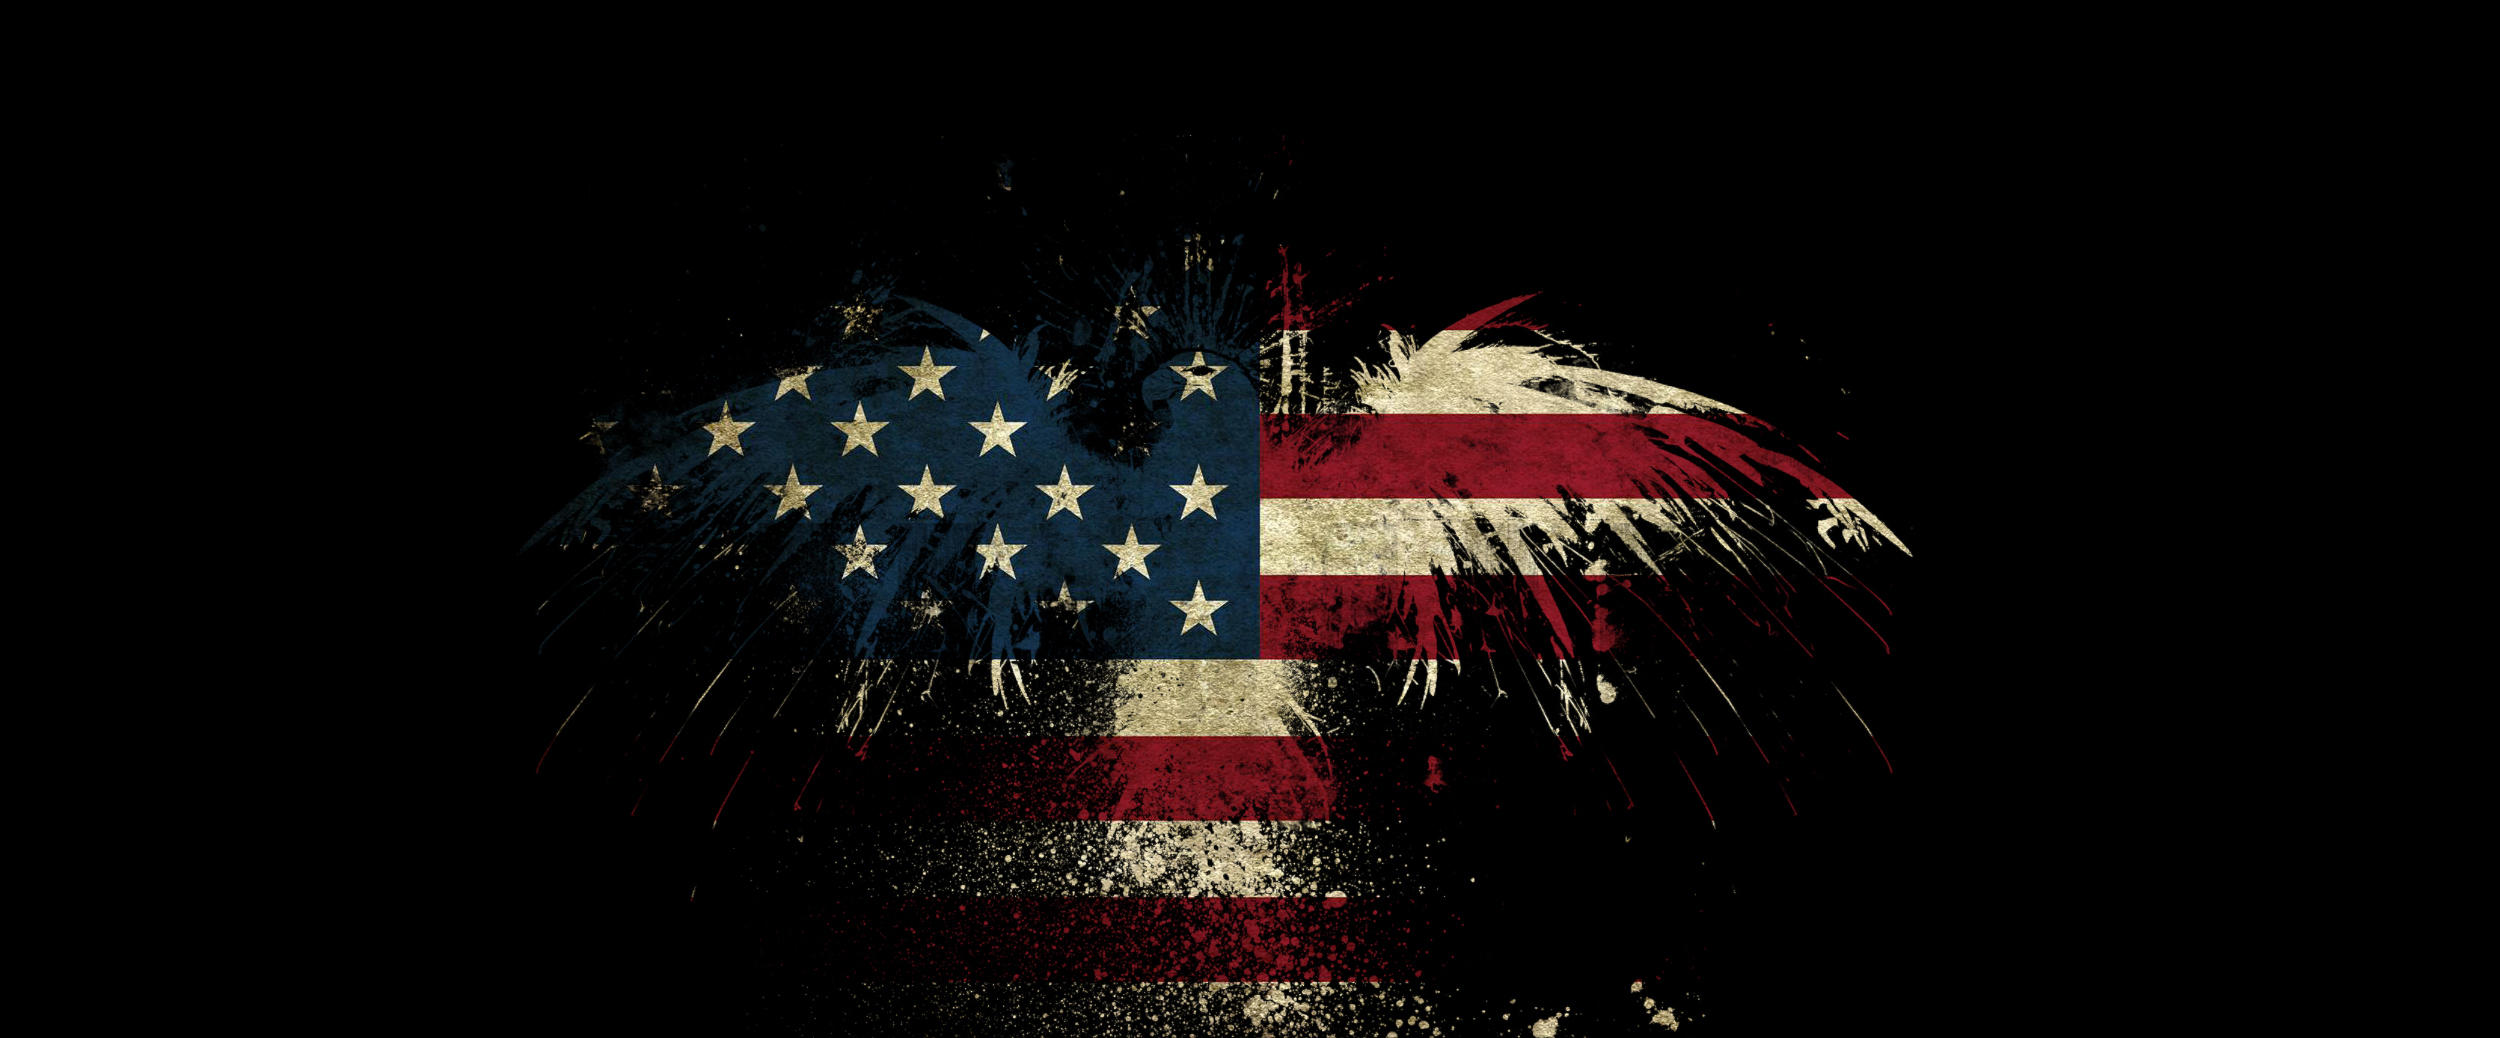 united states flag if you can find me HD Wallpaper   World 707621 2500x1038